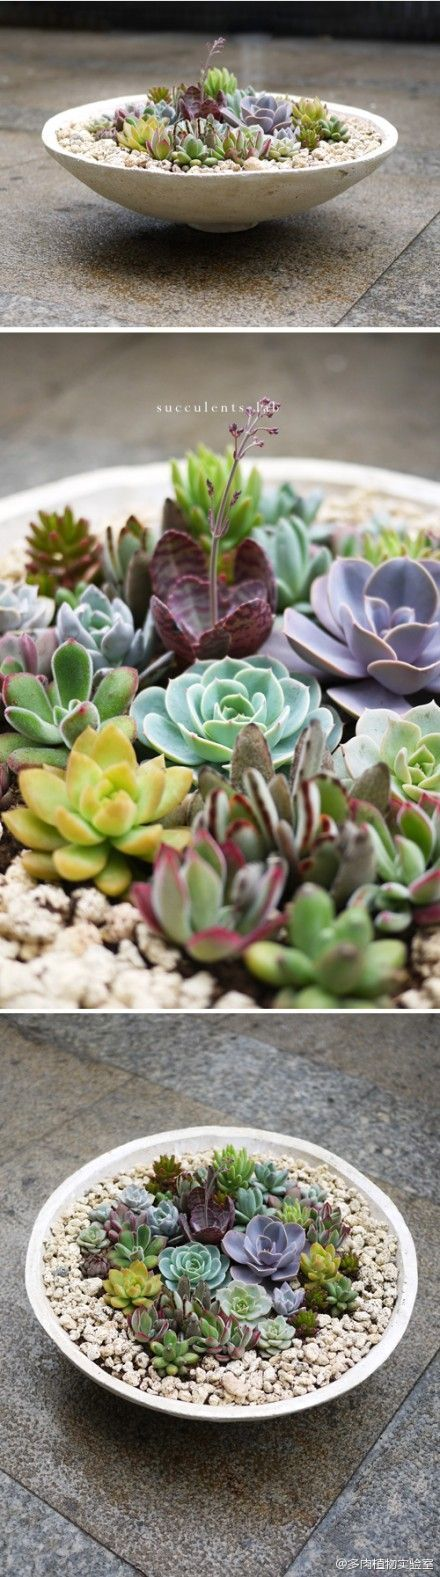 Variety of succulents in a dish garden gardening designing succulents pinterest gardens - Dish garden containers ...